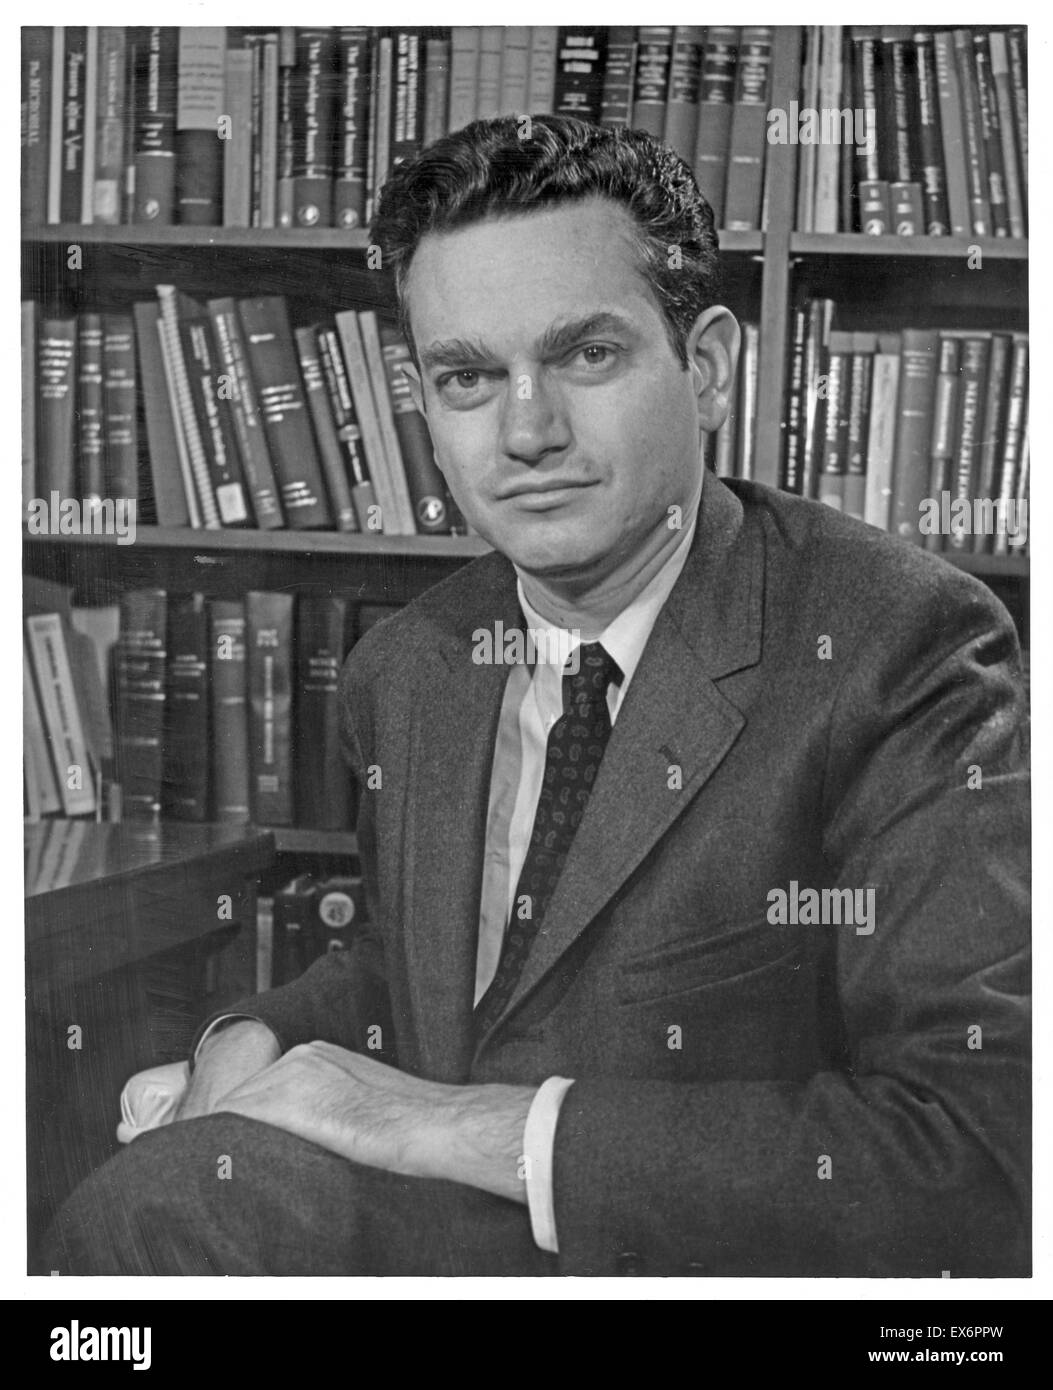 Marshall W. Nirenberg (1927-2010) was an American biochemist who shared the 1968 Nobel Prize in Physiology or Medicine - Stock Image